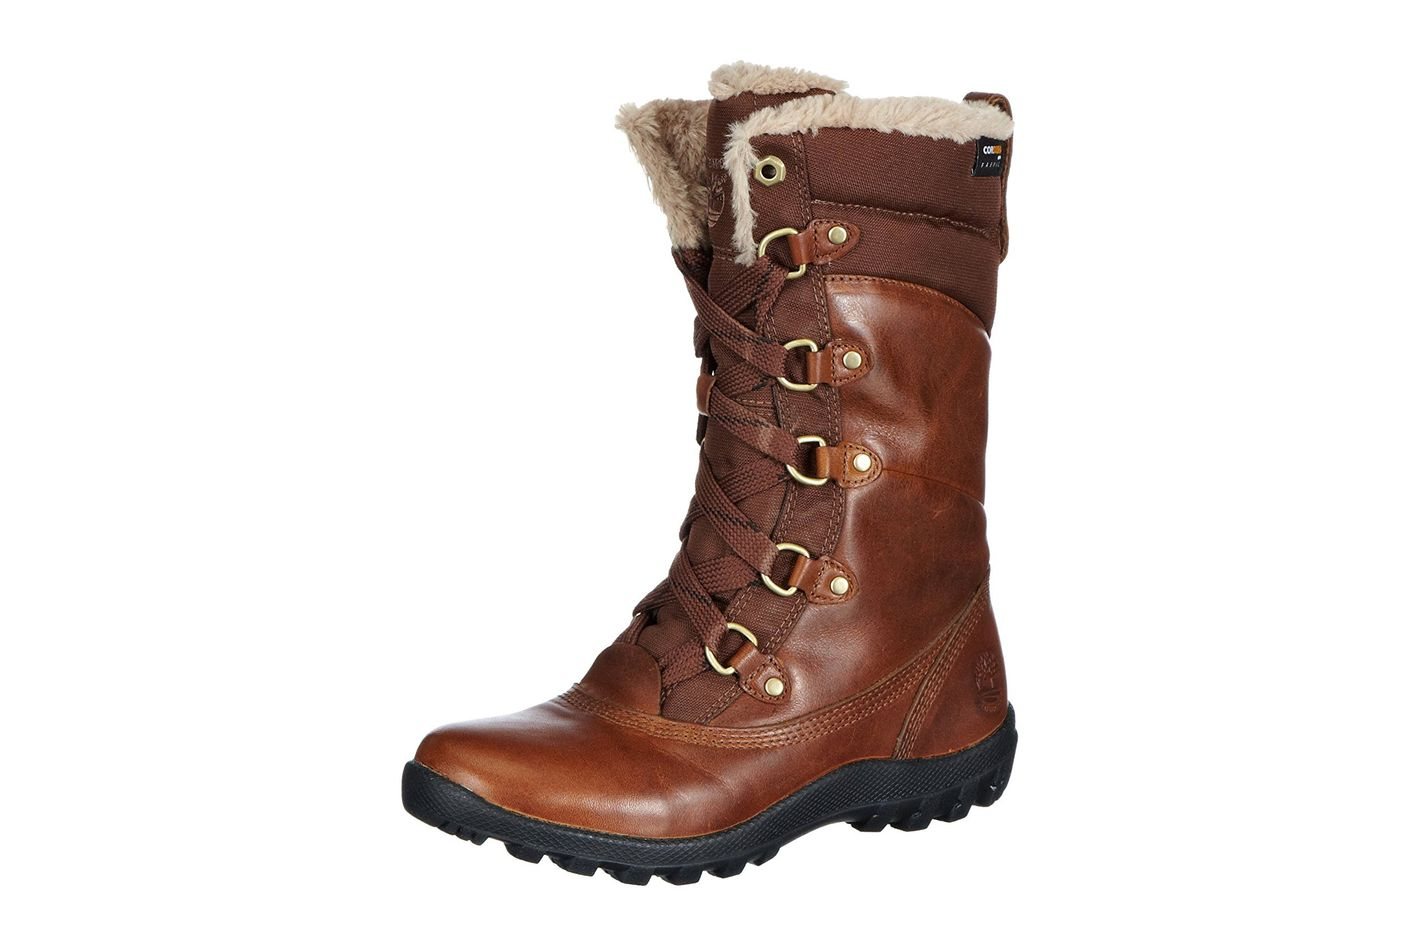 c018eaced59e Timberland Women s MT Hope Mid Waterproof Boot